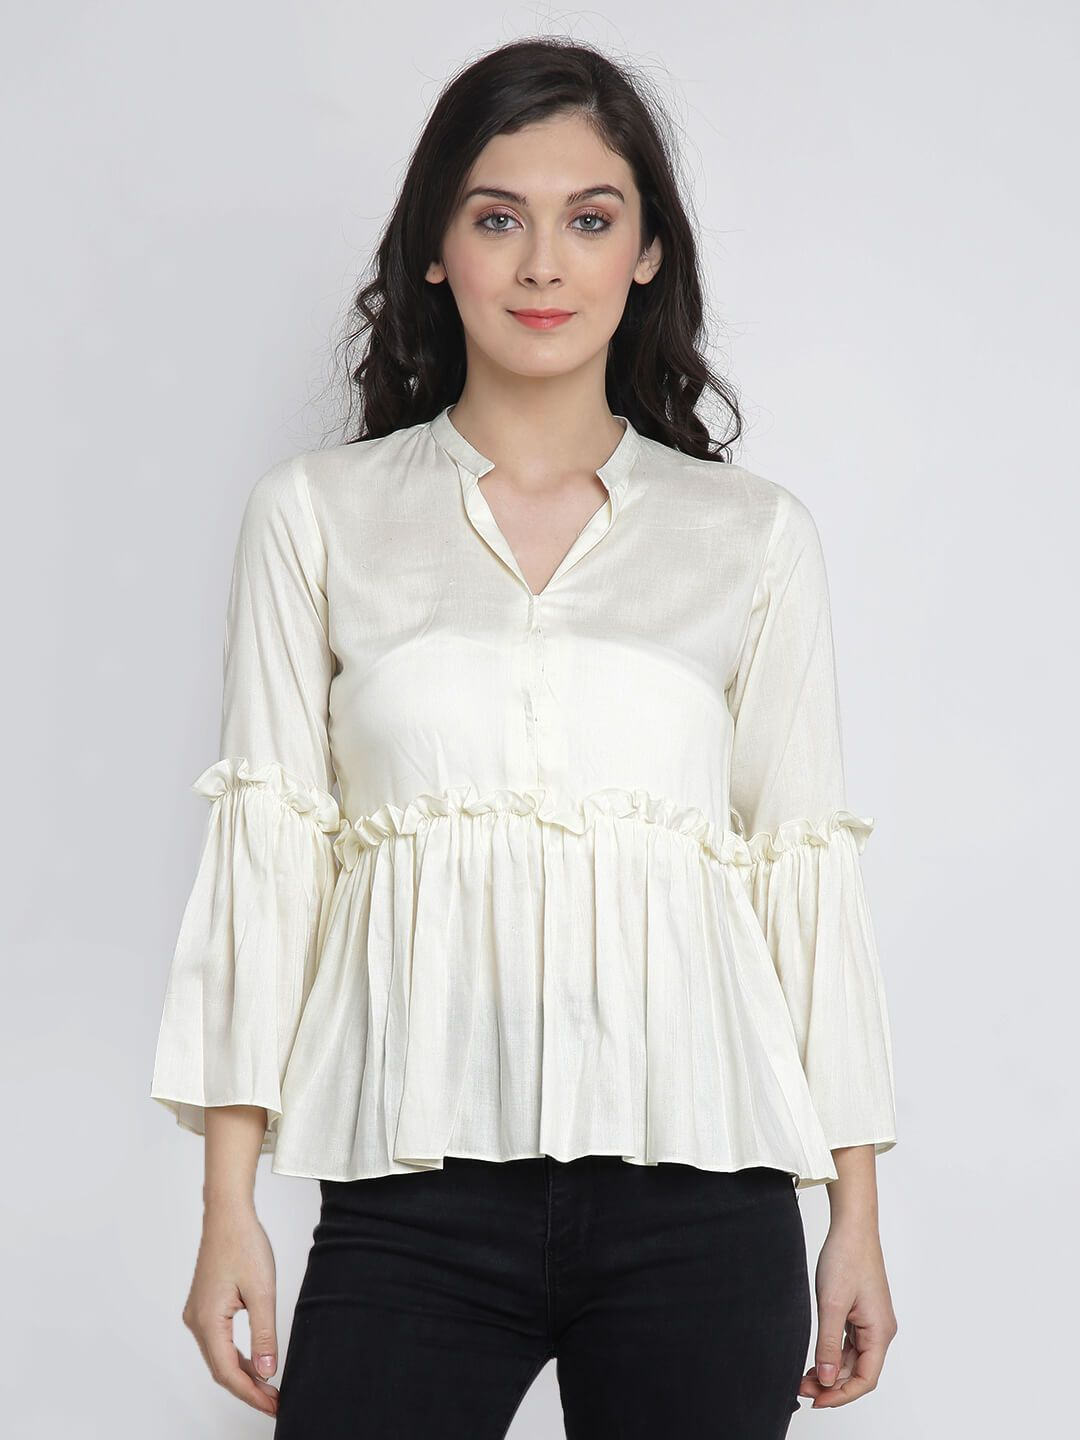 c17a6113bcb There are different types of tops available in the market like off-shoulder  tops